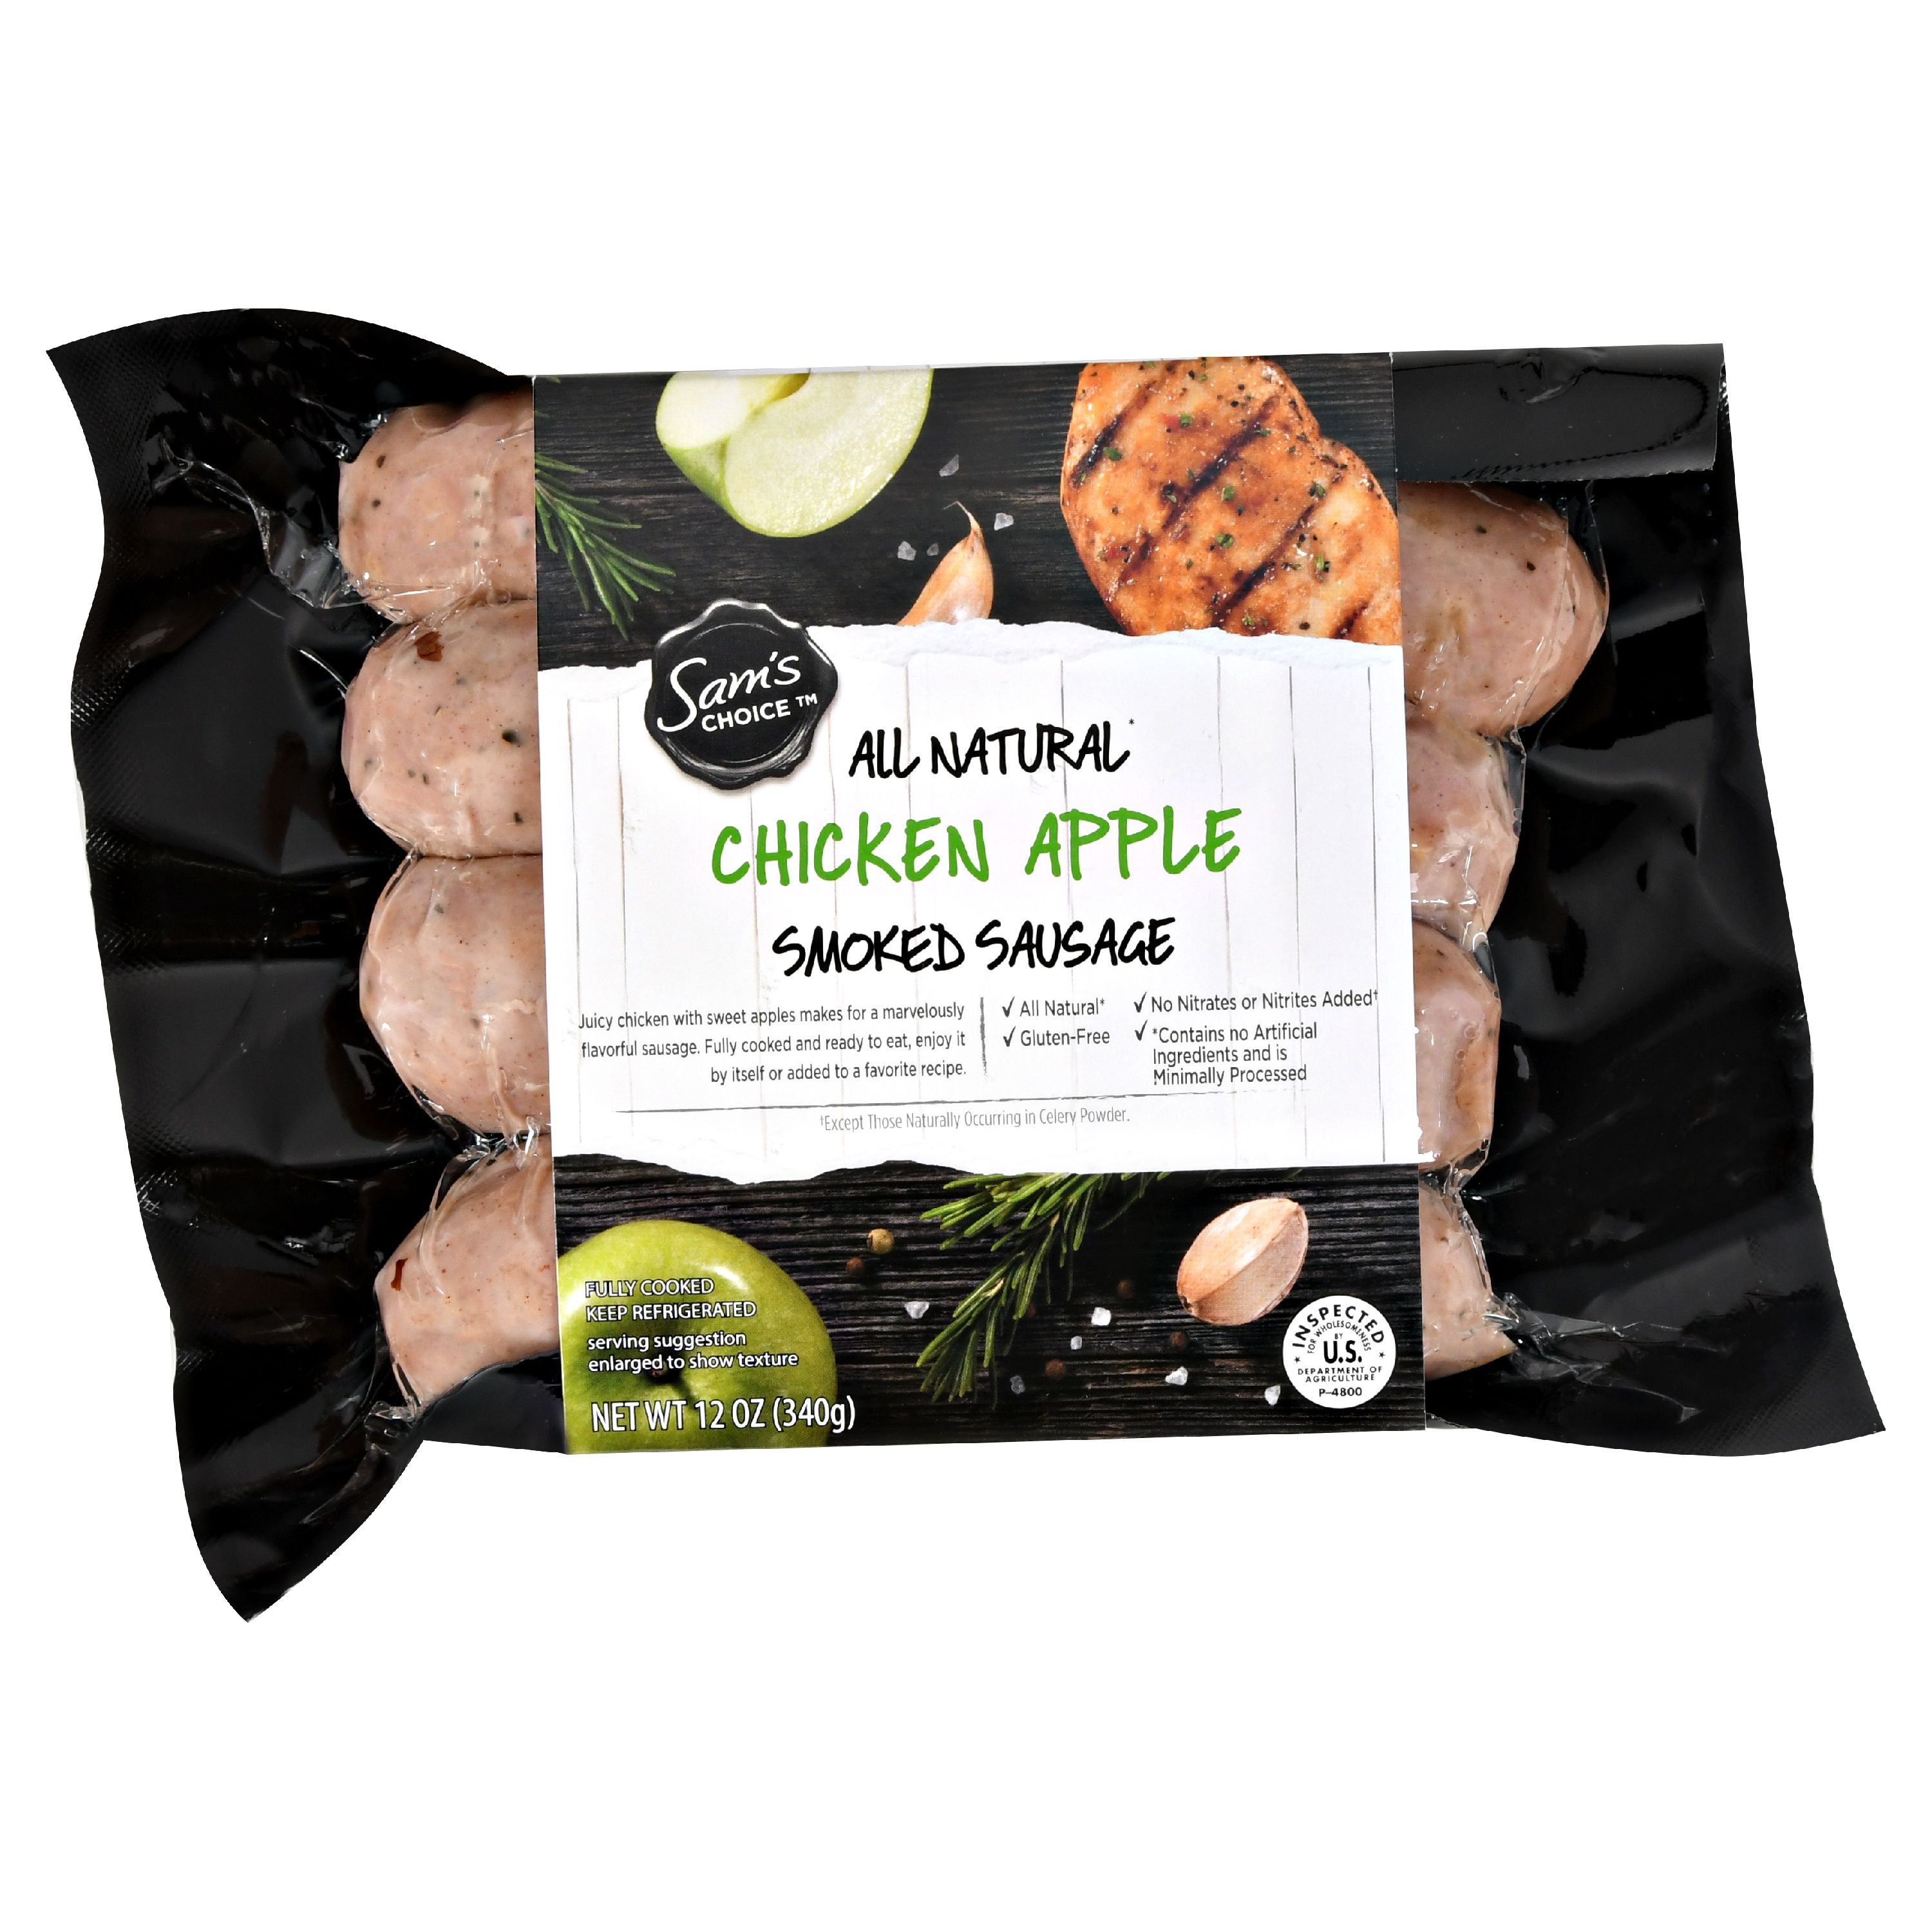 Sam's Choice All Natural Smoked Sausage, Chicken Apple, 12 oz